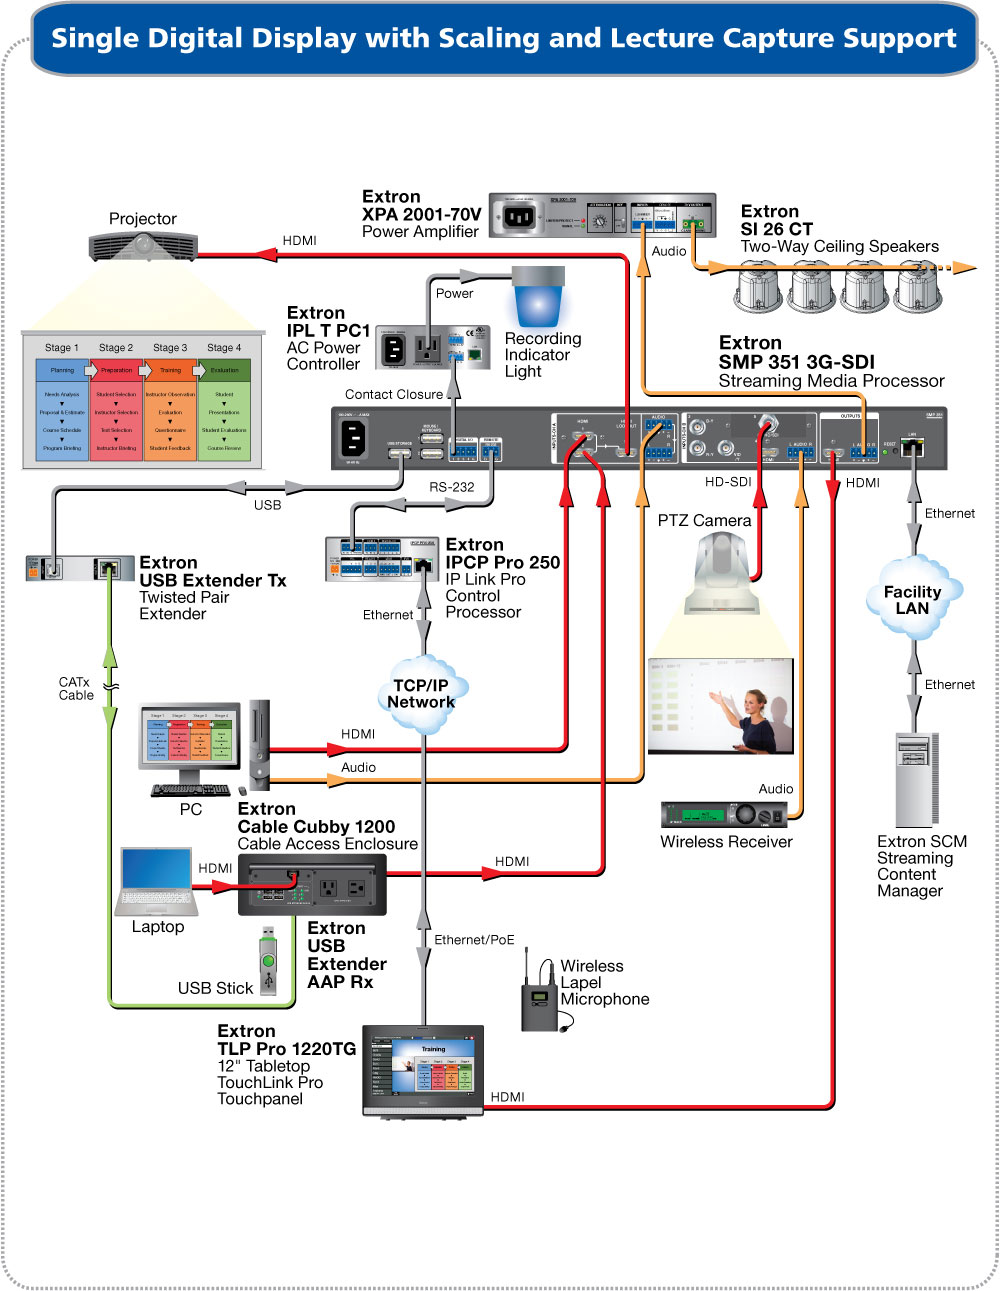 capturelecture_smp351 sm application diagram downloads extron extron wiring diagram at pacquiaovsvargaslive.co